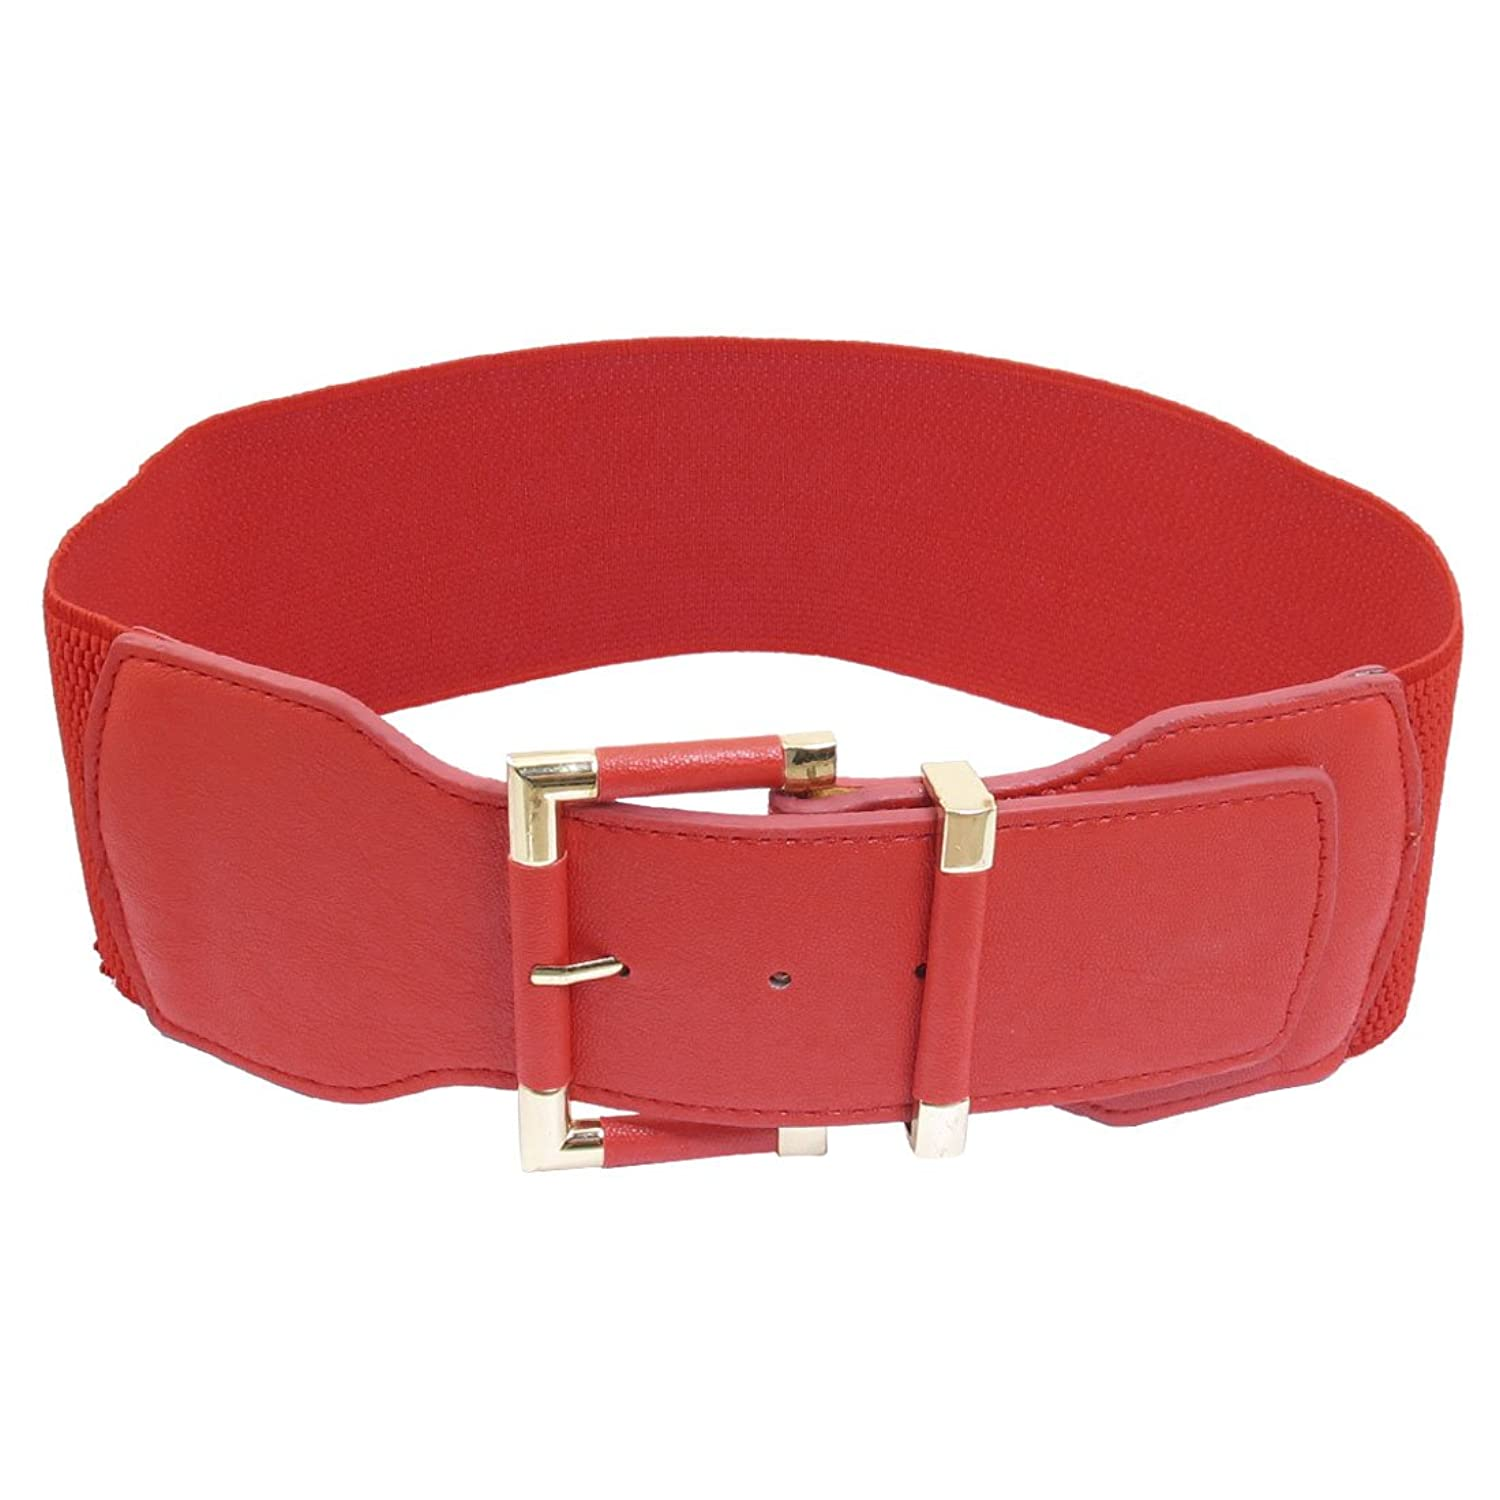 Ladies Single Pin Buckle Closure Faux Leather Stretchy Band Waist Belt Red